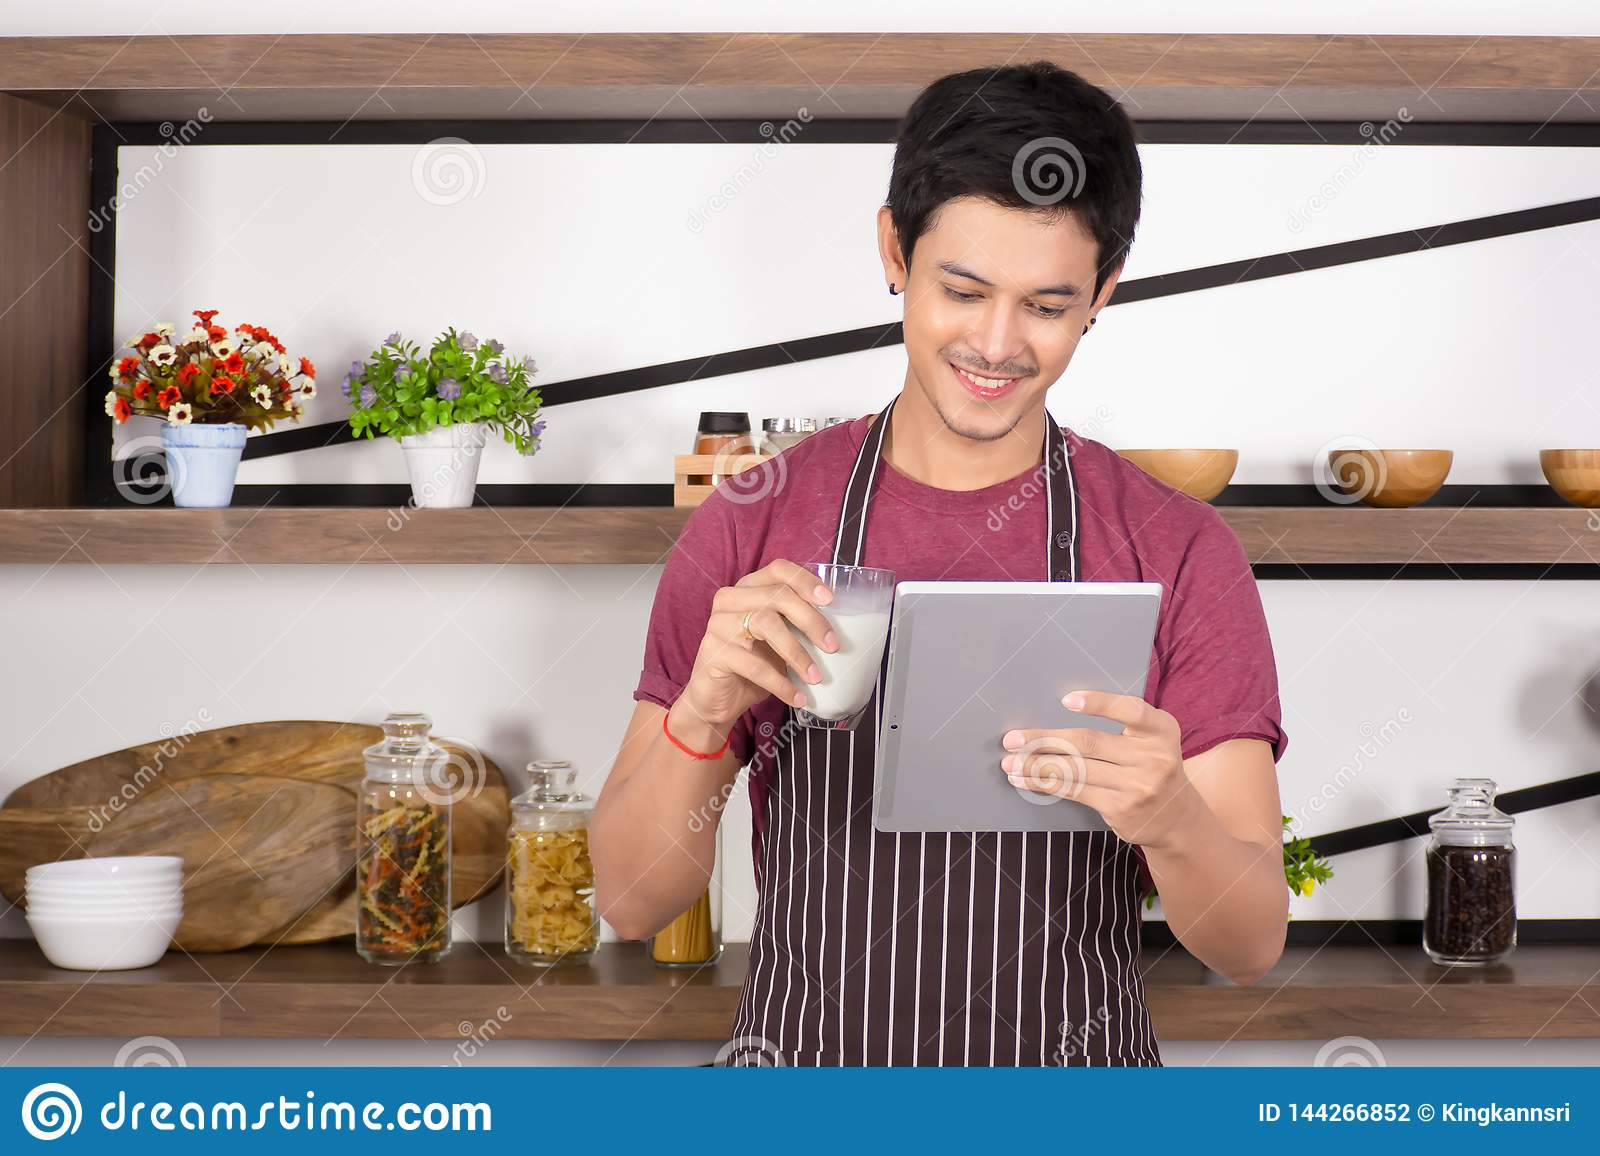 Happy young man wear brown apron holding a glass of milk while using tablet